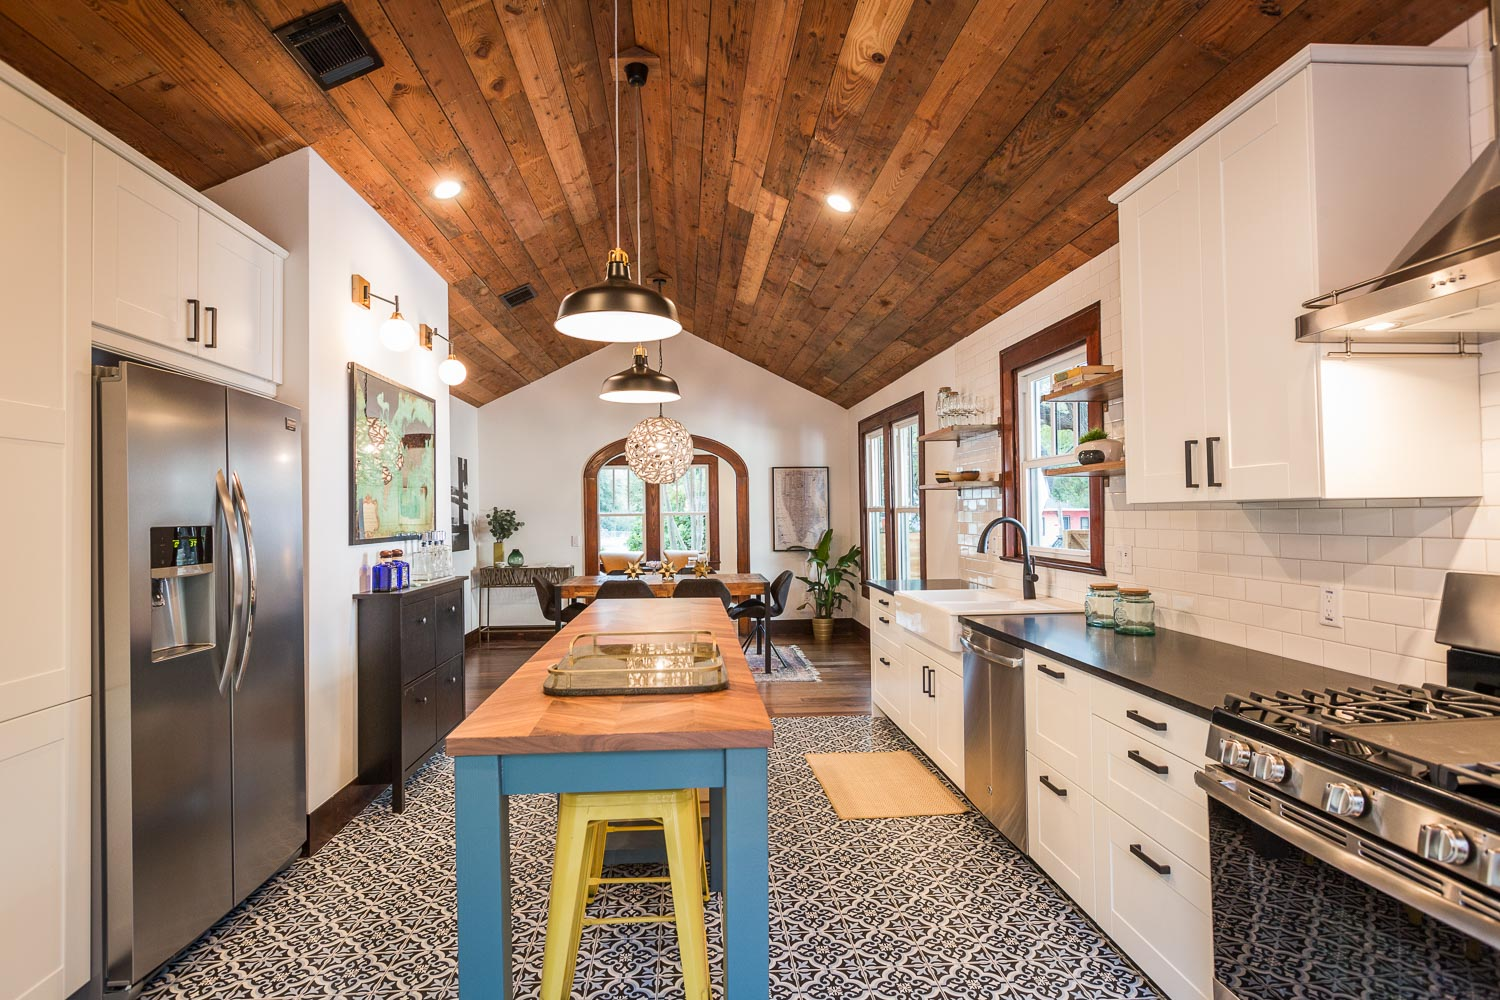 Another view of the kitchen towards the open dining room. Notice the vault and shiplap continues.